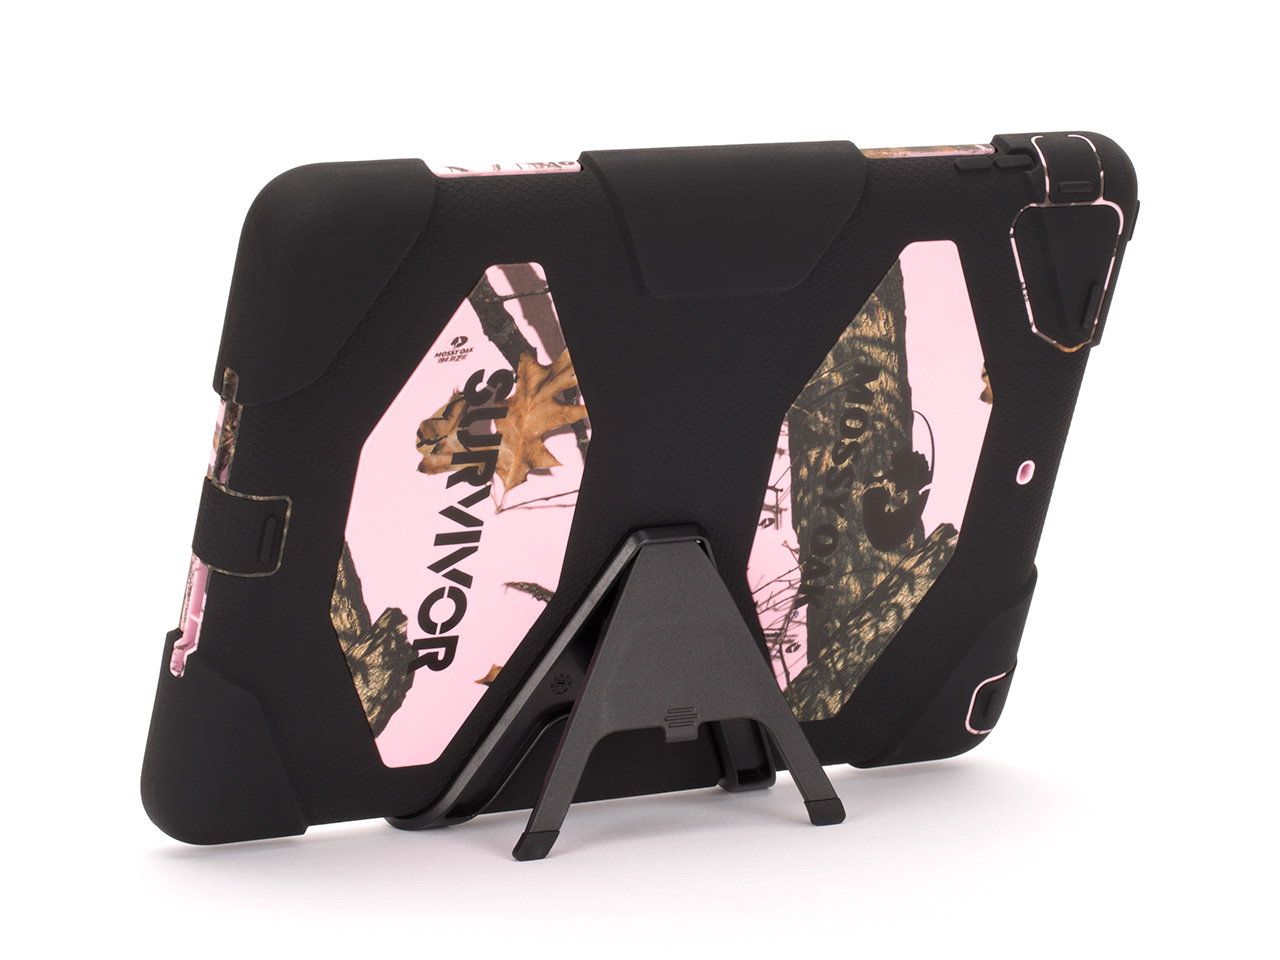 Pink Breakup/Black Survivor All-Terrain in Mossy Oak Camo + Stand for iPad Air